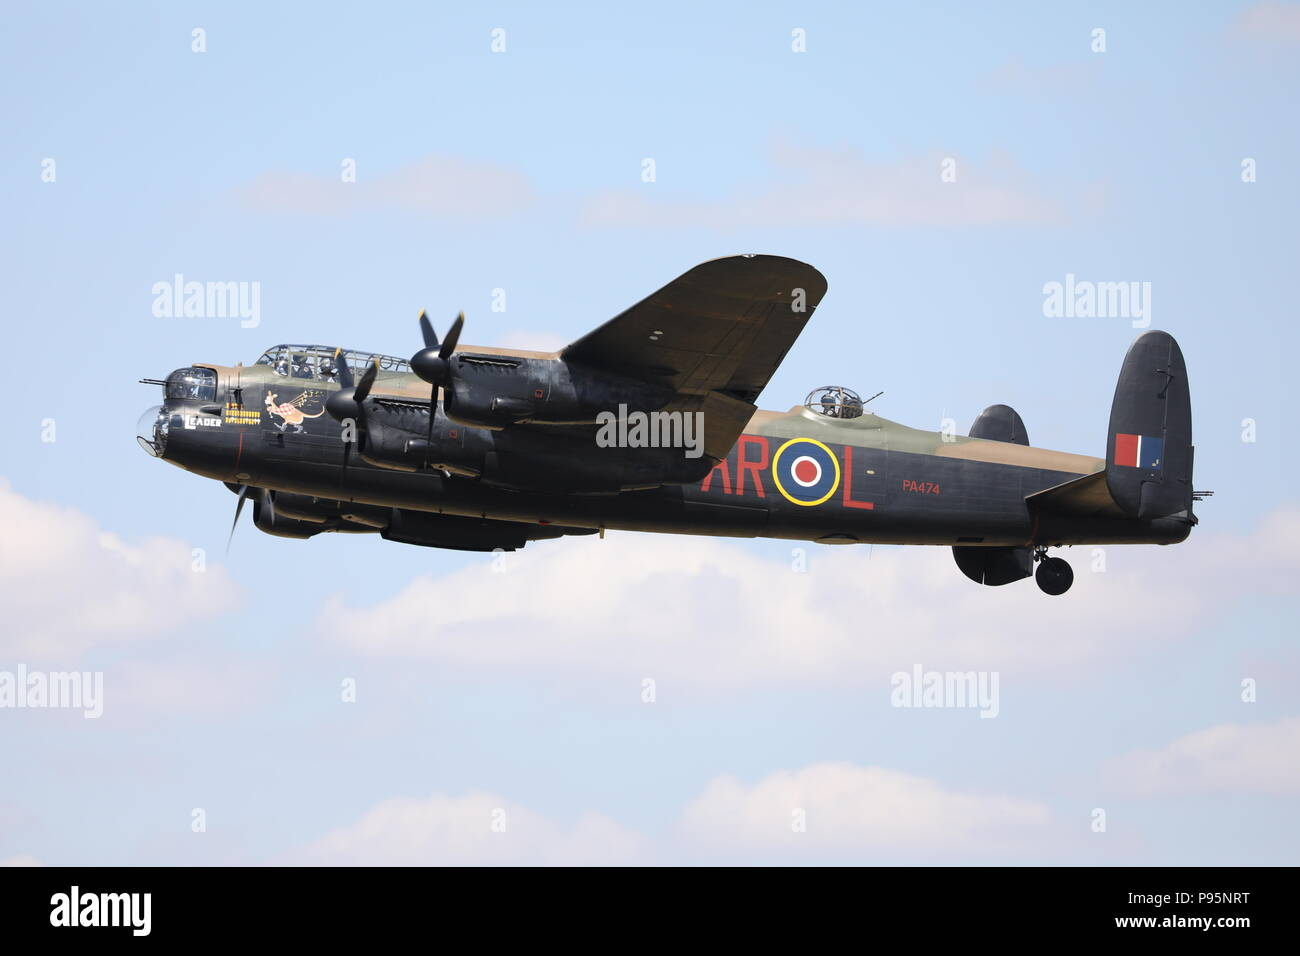 RAF Avro Lancaster Bomber Fairford RIAT Sunday 15th July 2018 Military Aeroplane Royal International Air Tattoo RAF100 PA474 Stock Photo